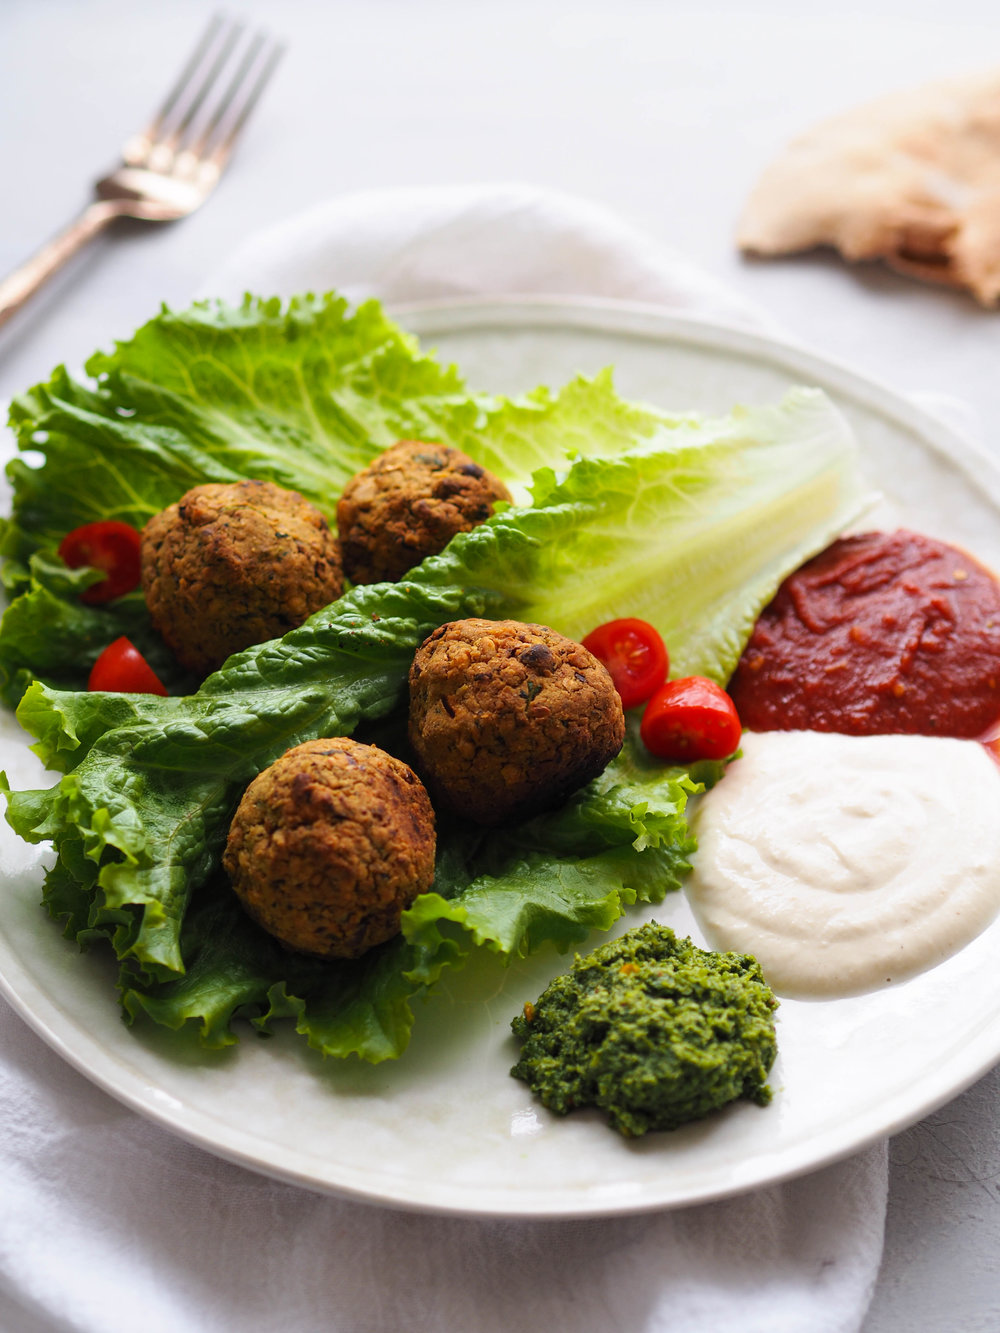 These easy baked green falafel are served with three different sauces - harissa tomato, tahini yogurt, and green chutney! #falafel #vegan #vegetarian #healthyrecipe